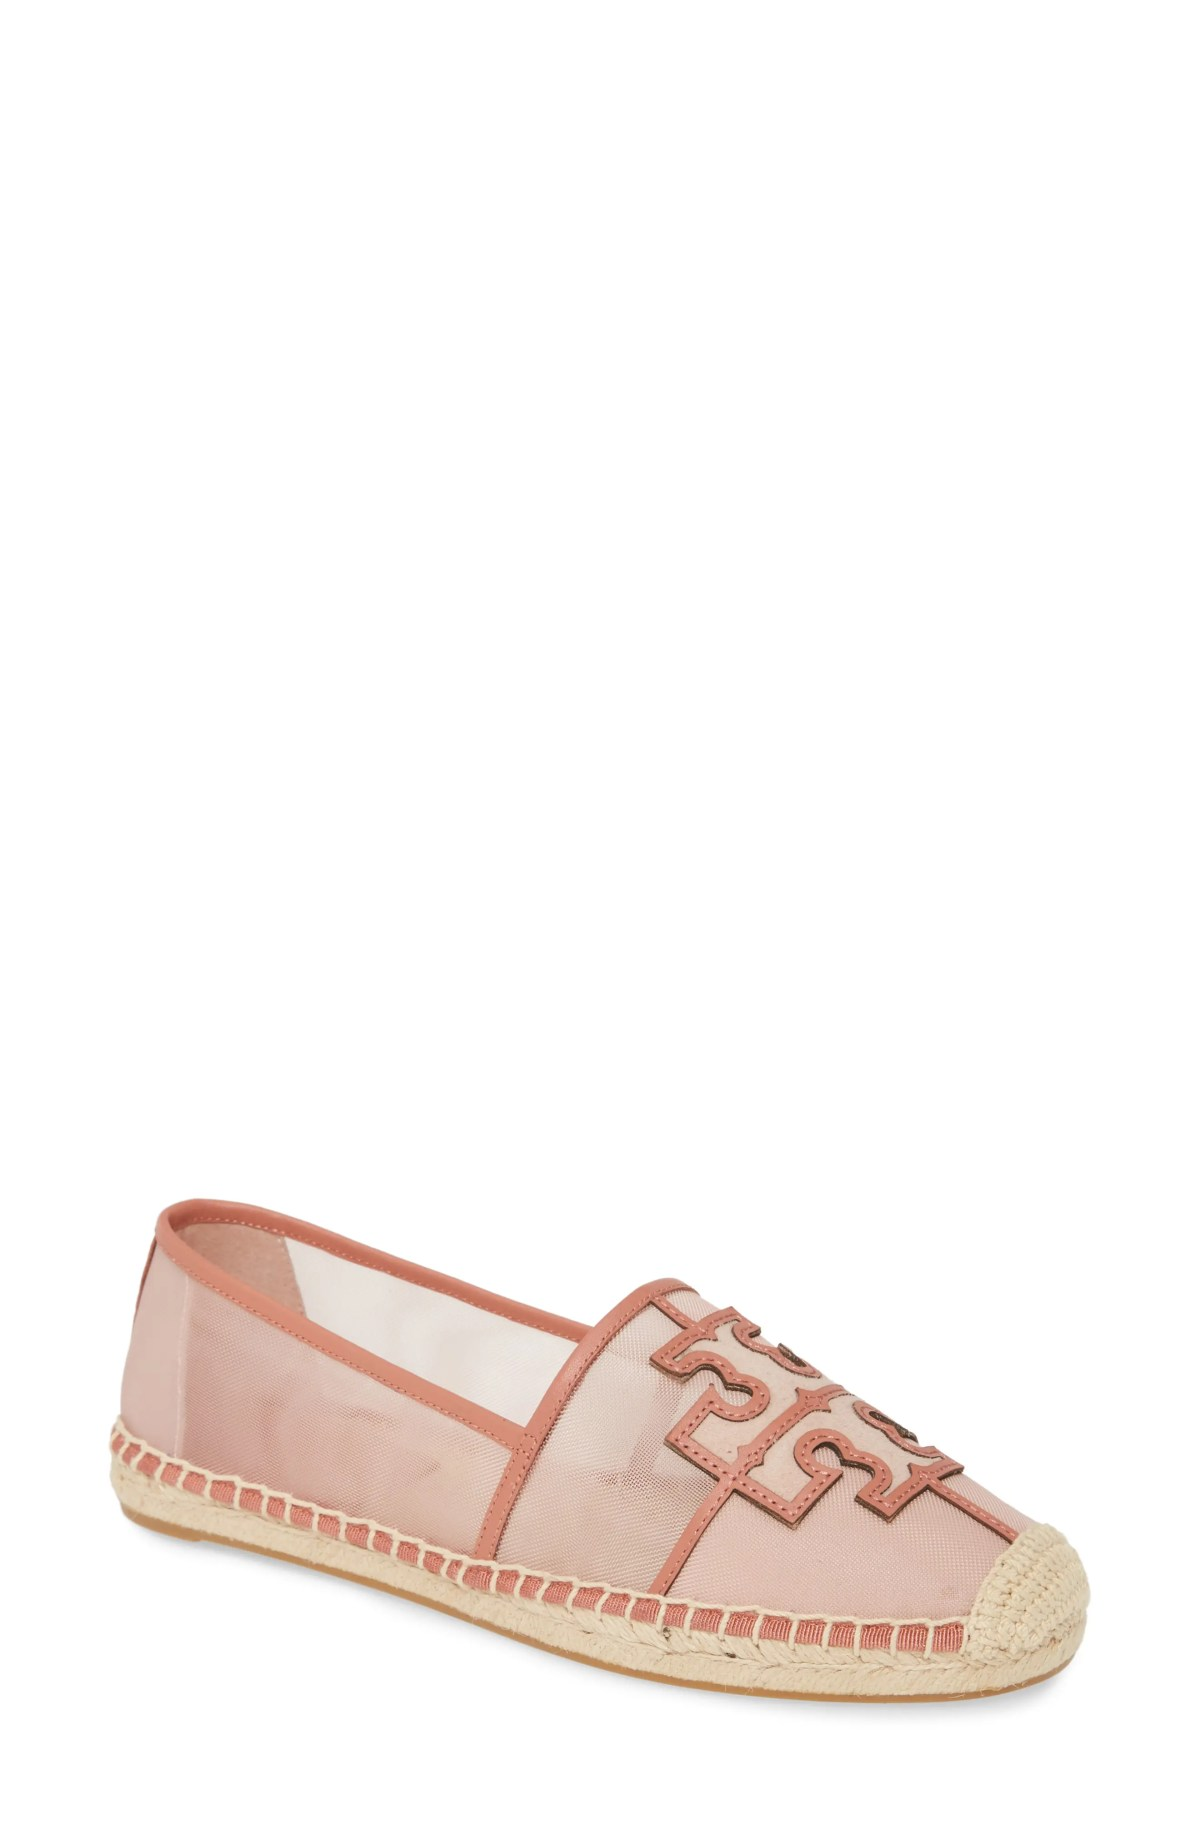 TORY BURCH Ines Espadrille, Main, color, SEA SHELL PINK